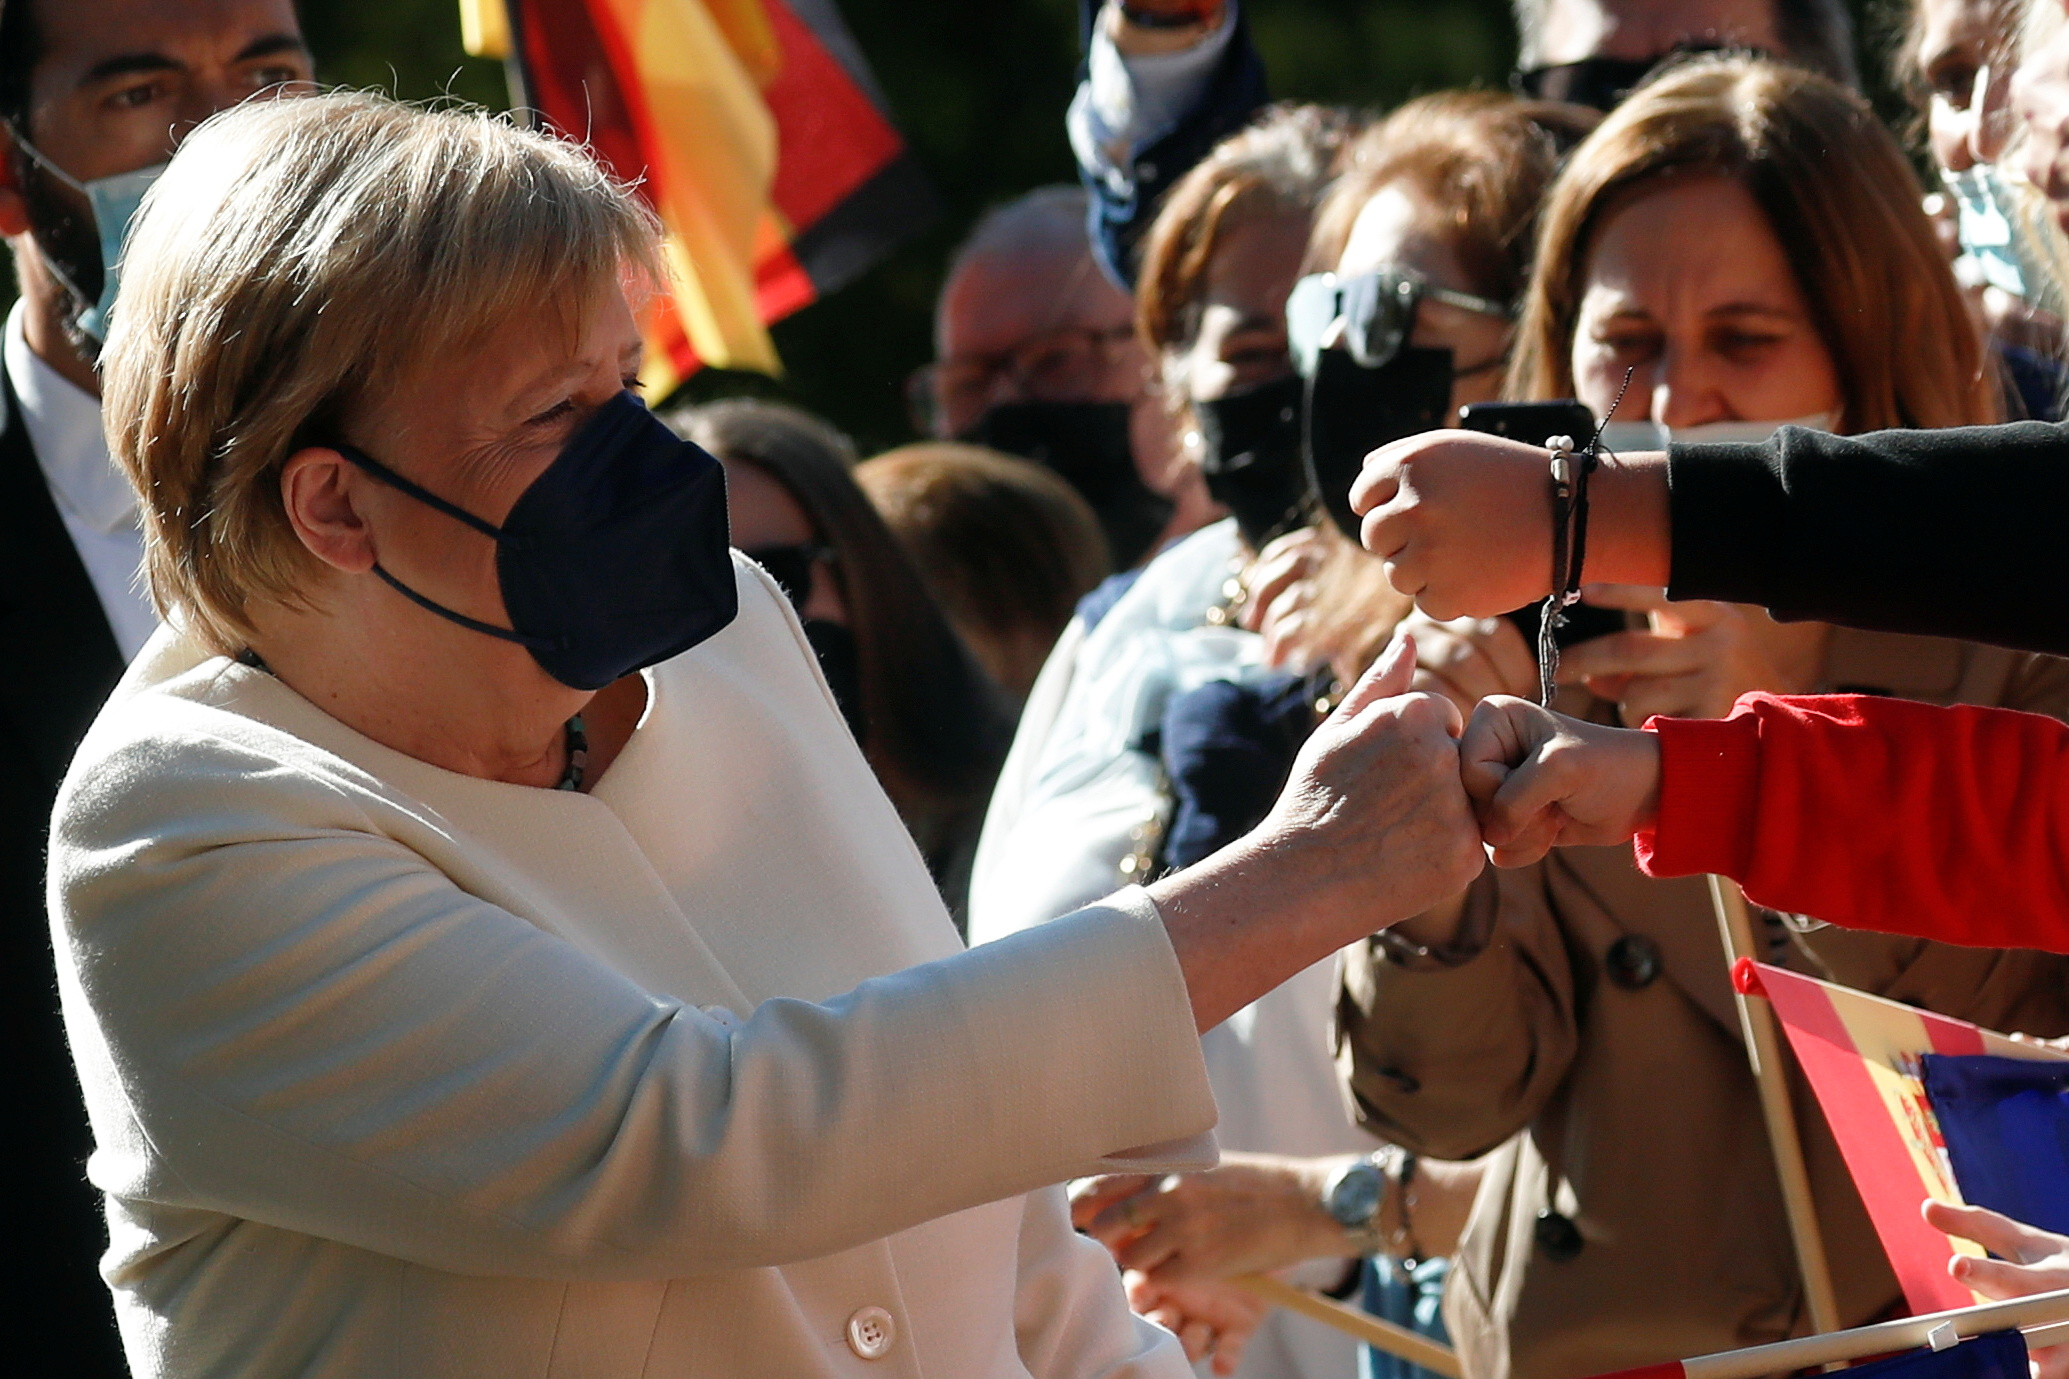 German Chancellor Angela Merkel greets people upon her arrival to receive the